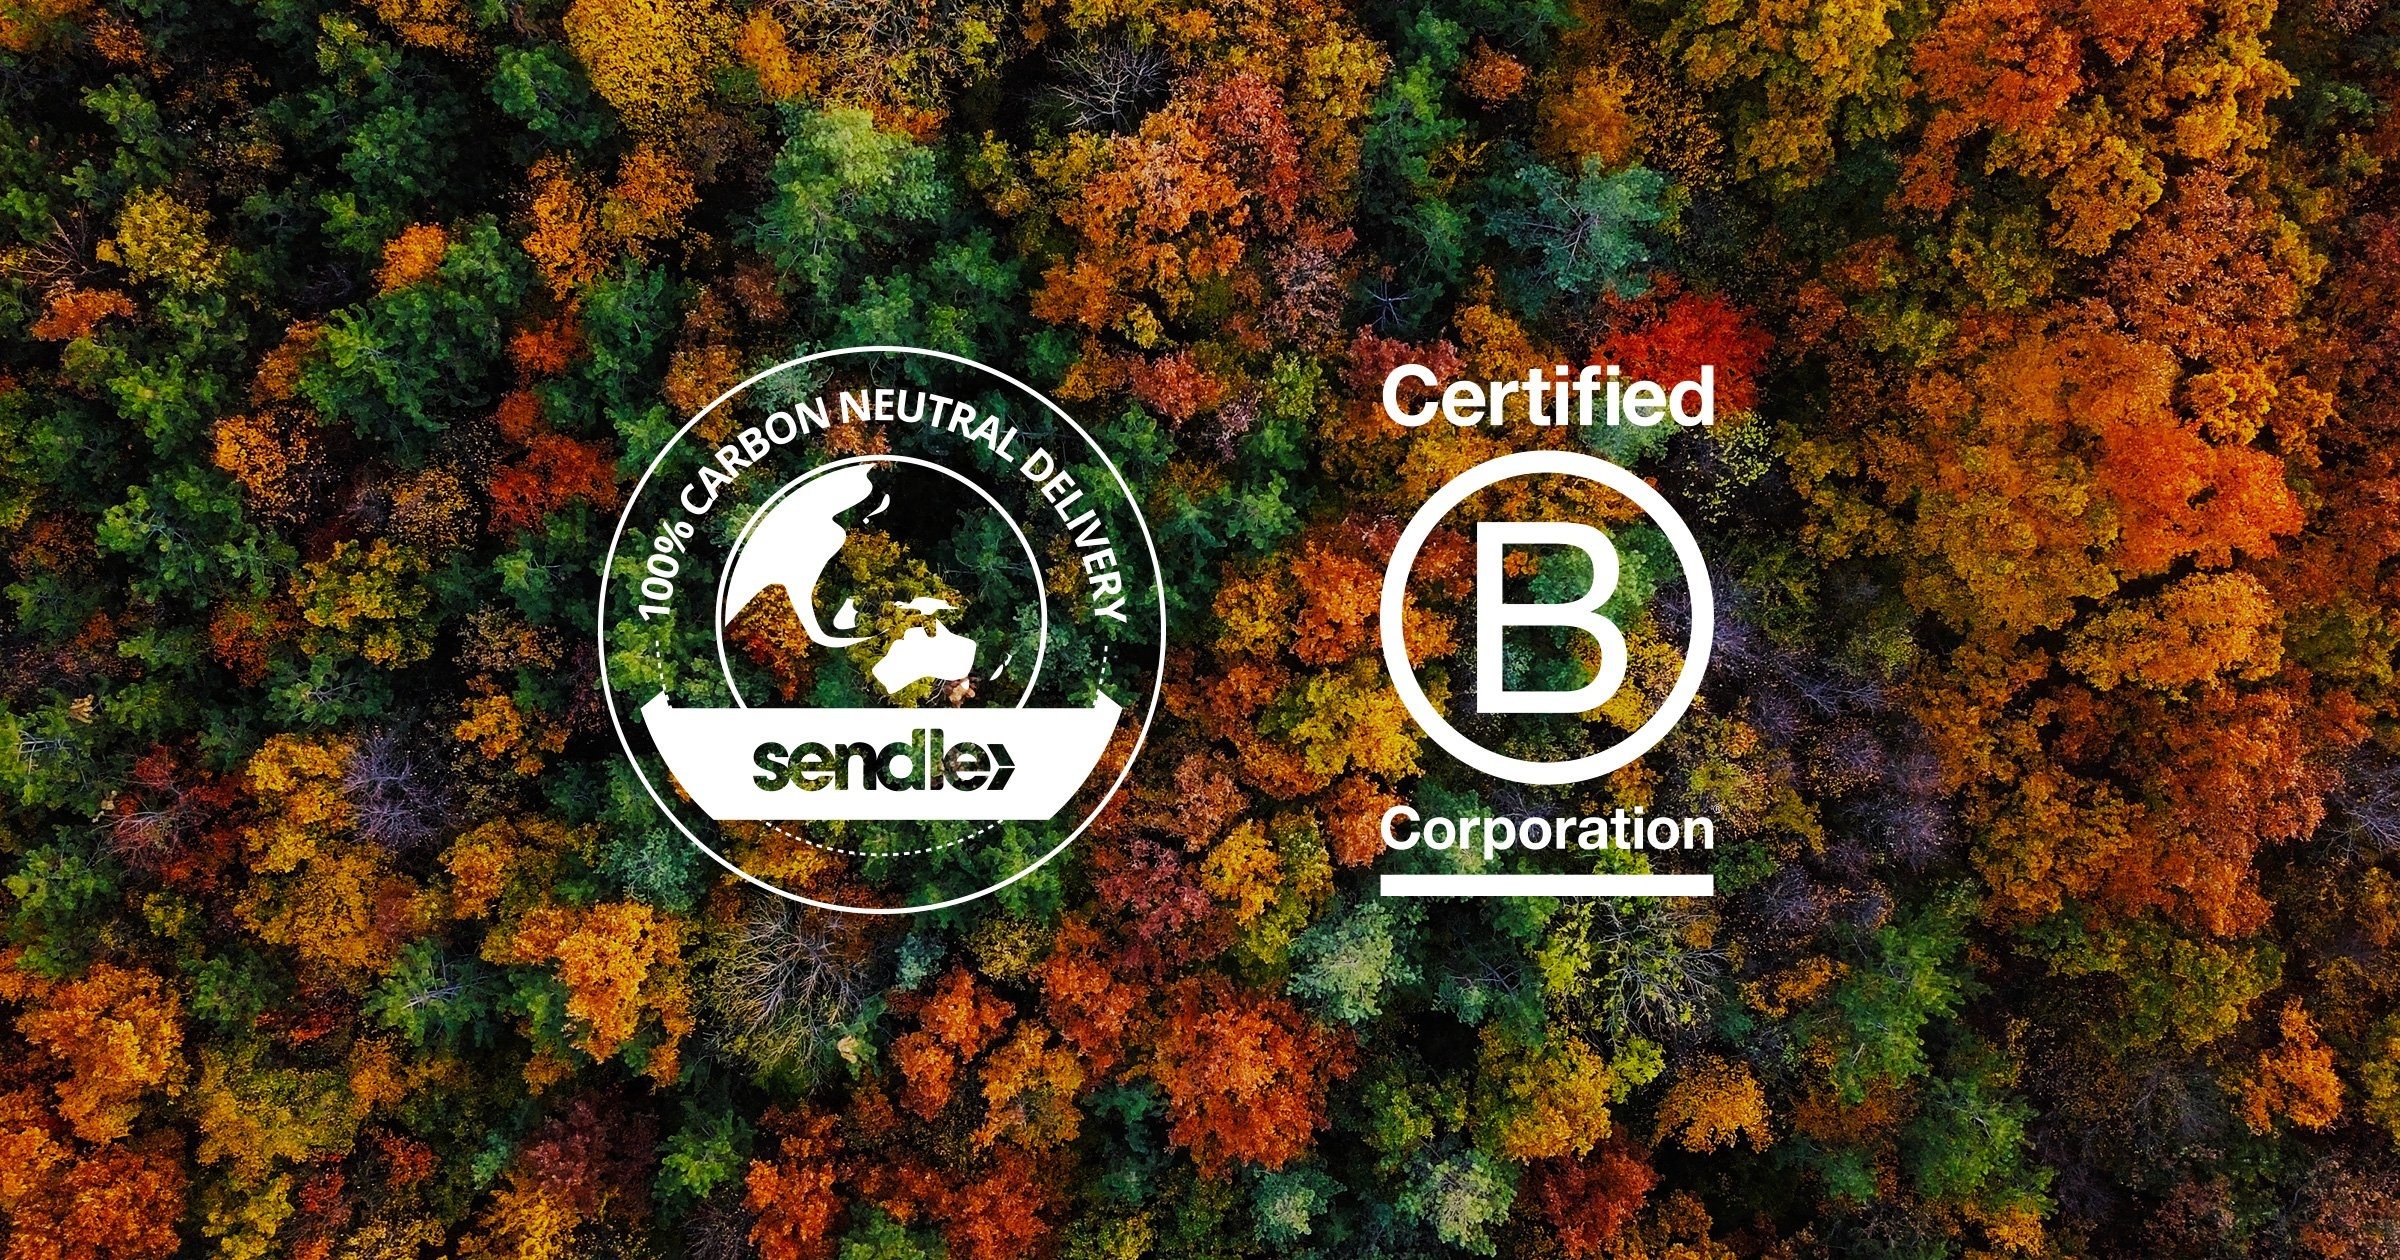 Sendle Carbon Neutral Delivery and B Corp